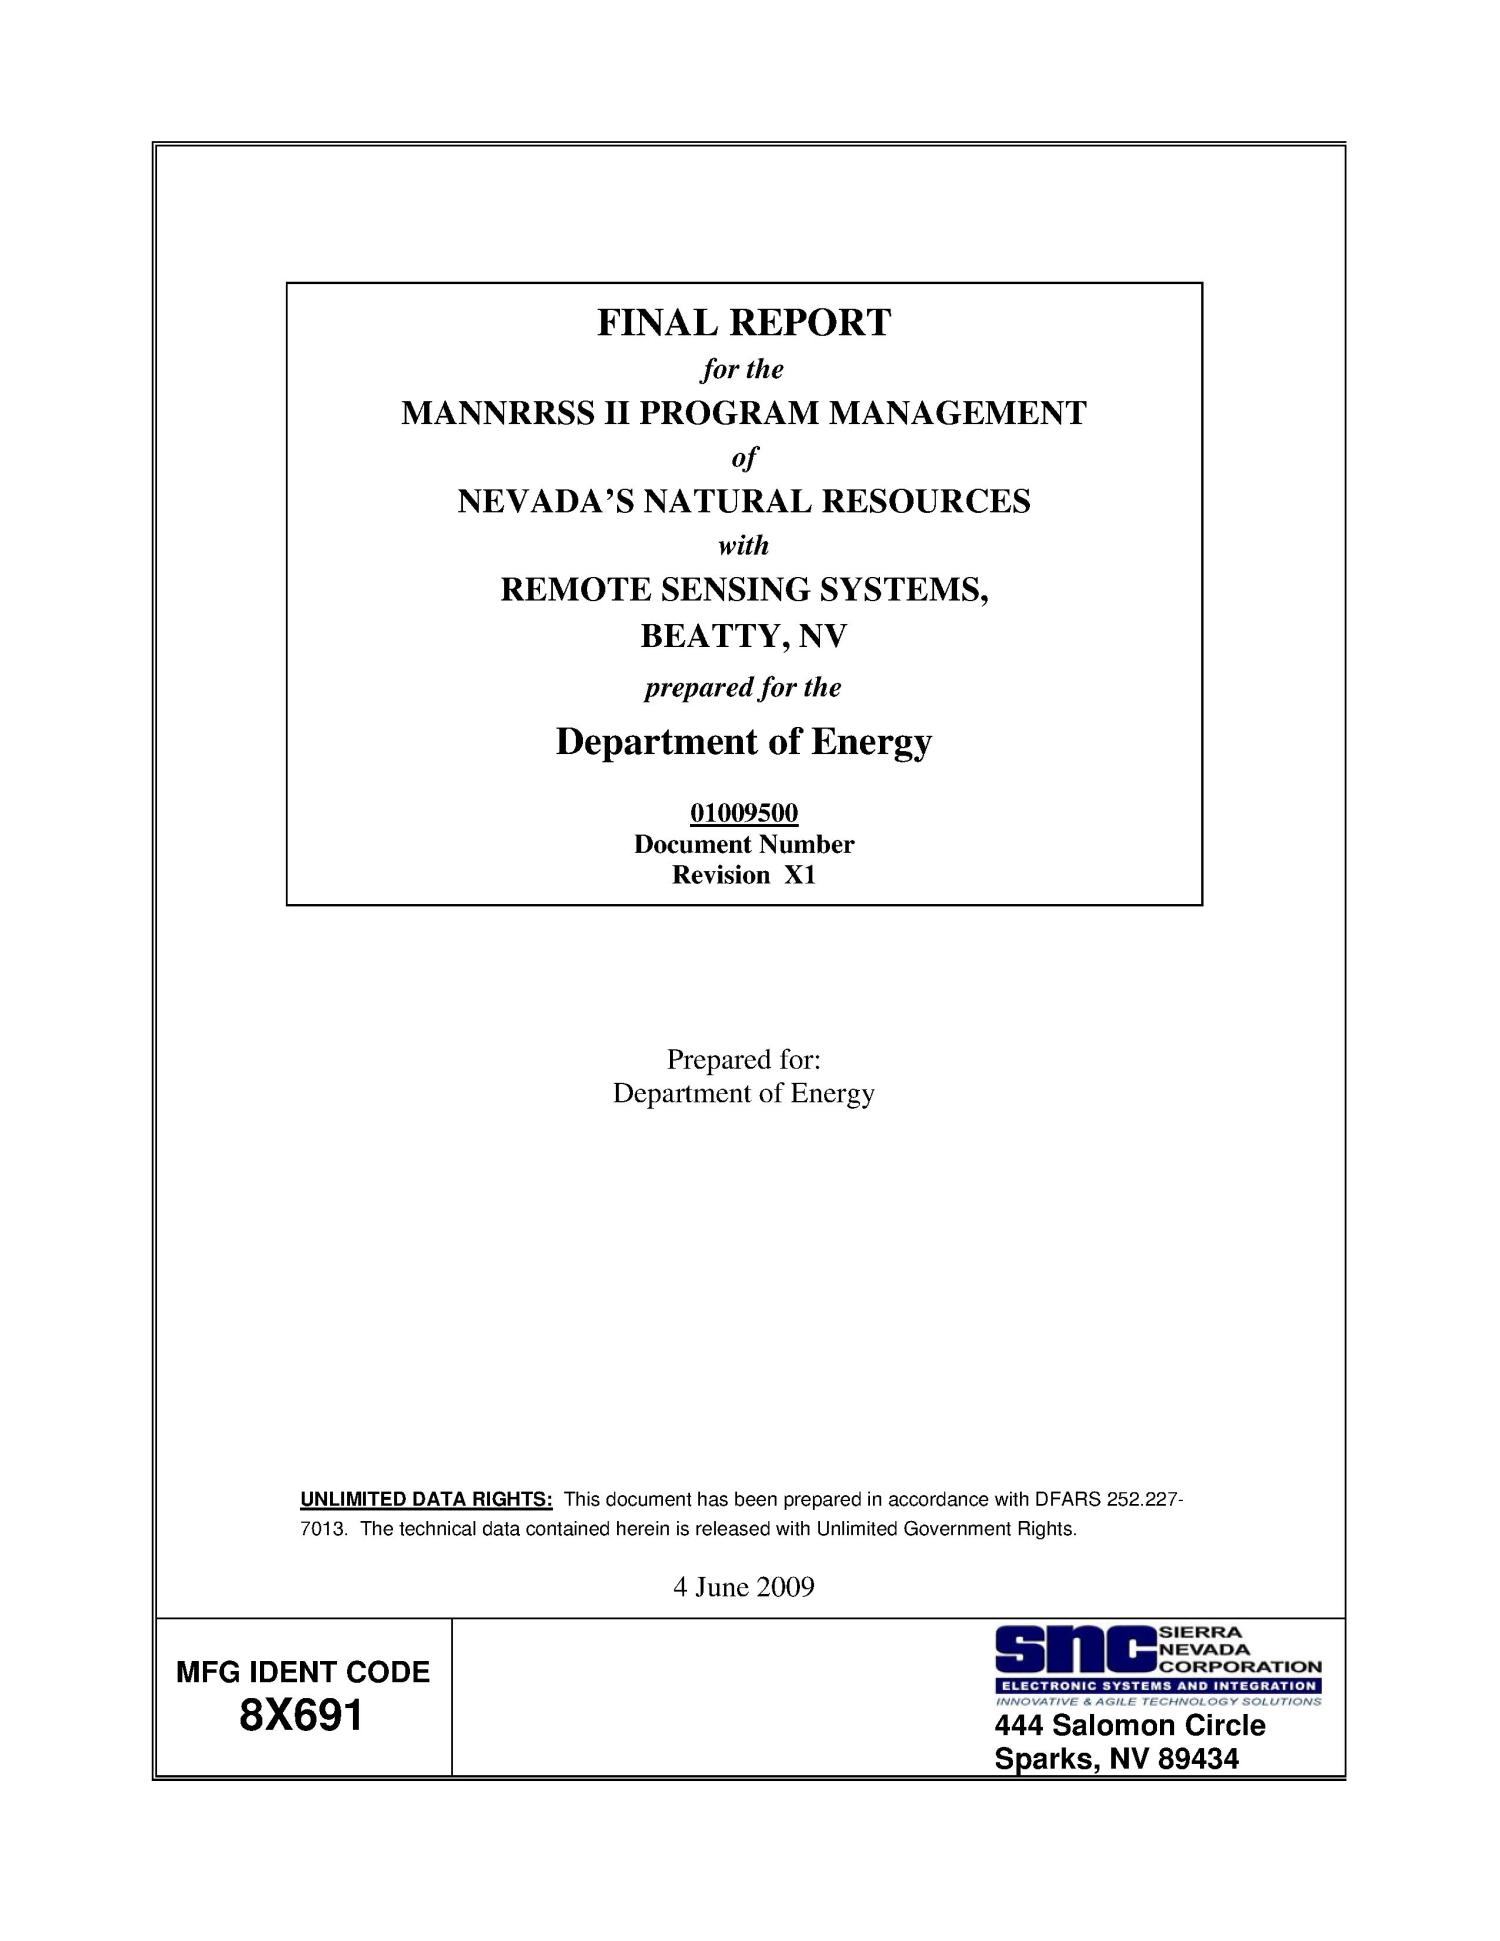 Final Report for the MANNRRSS II Program Management of